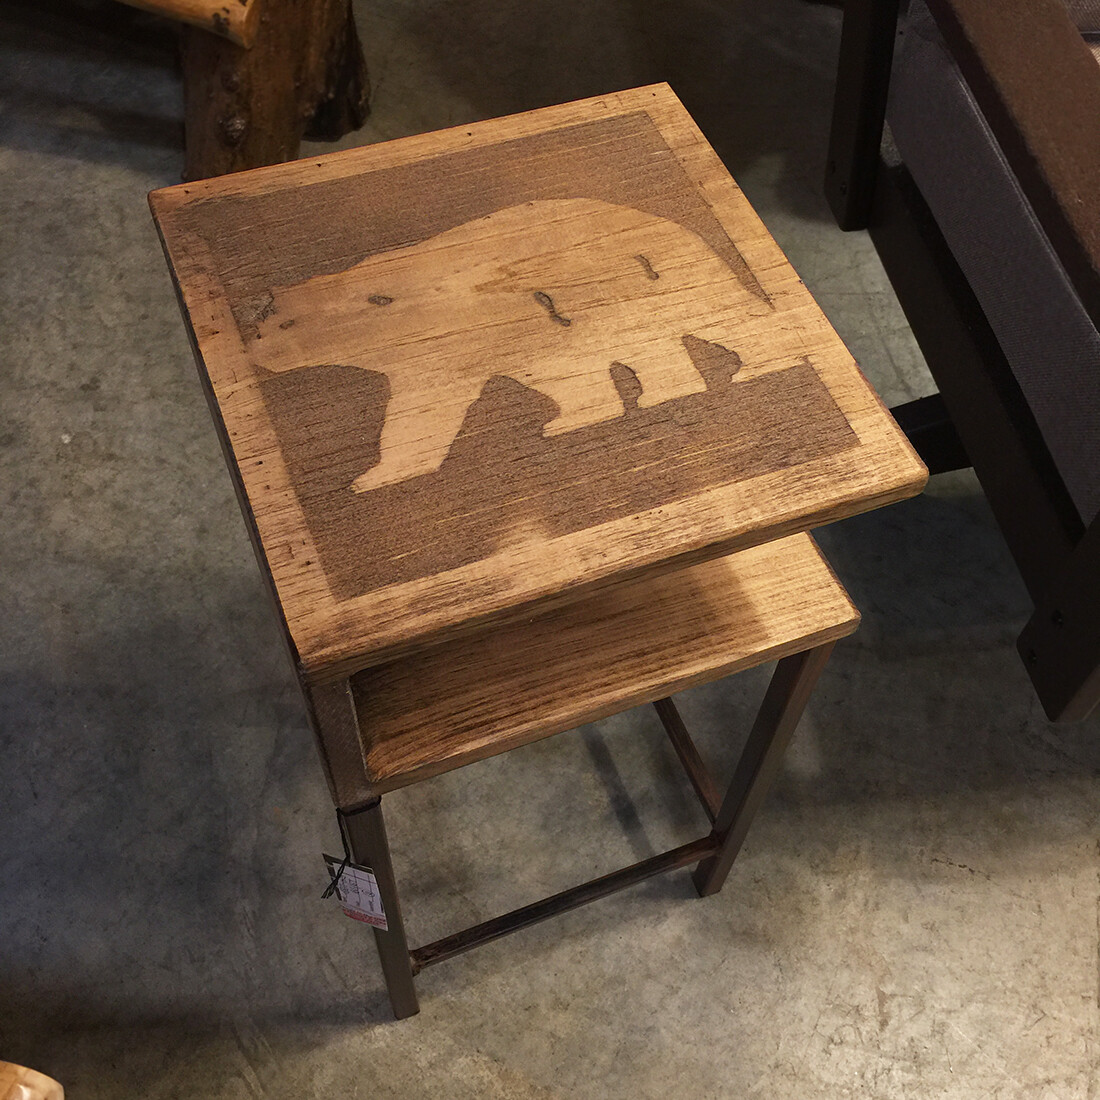 Iron Drink Table w/wooden shelf and bear top